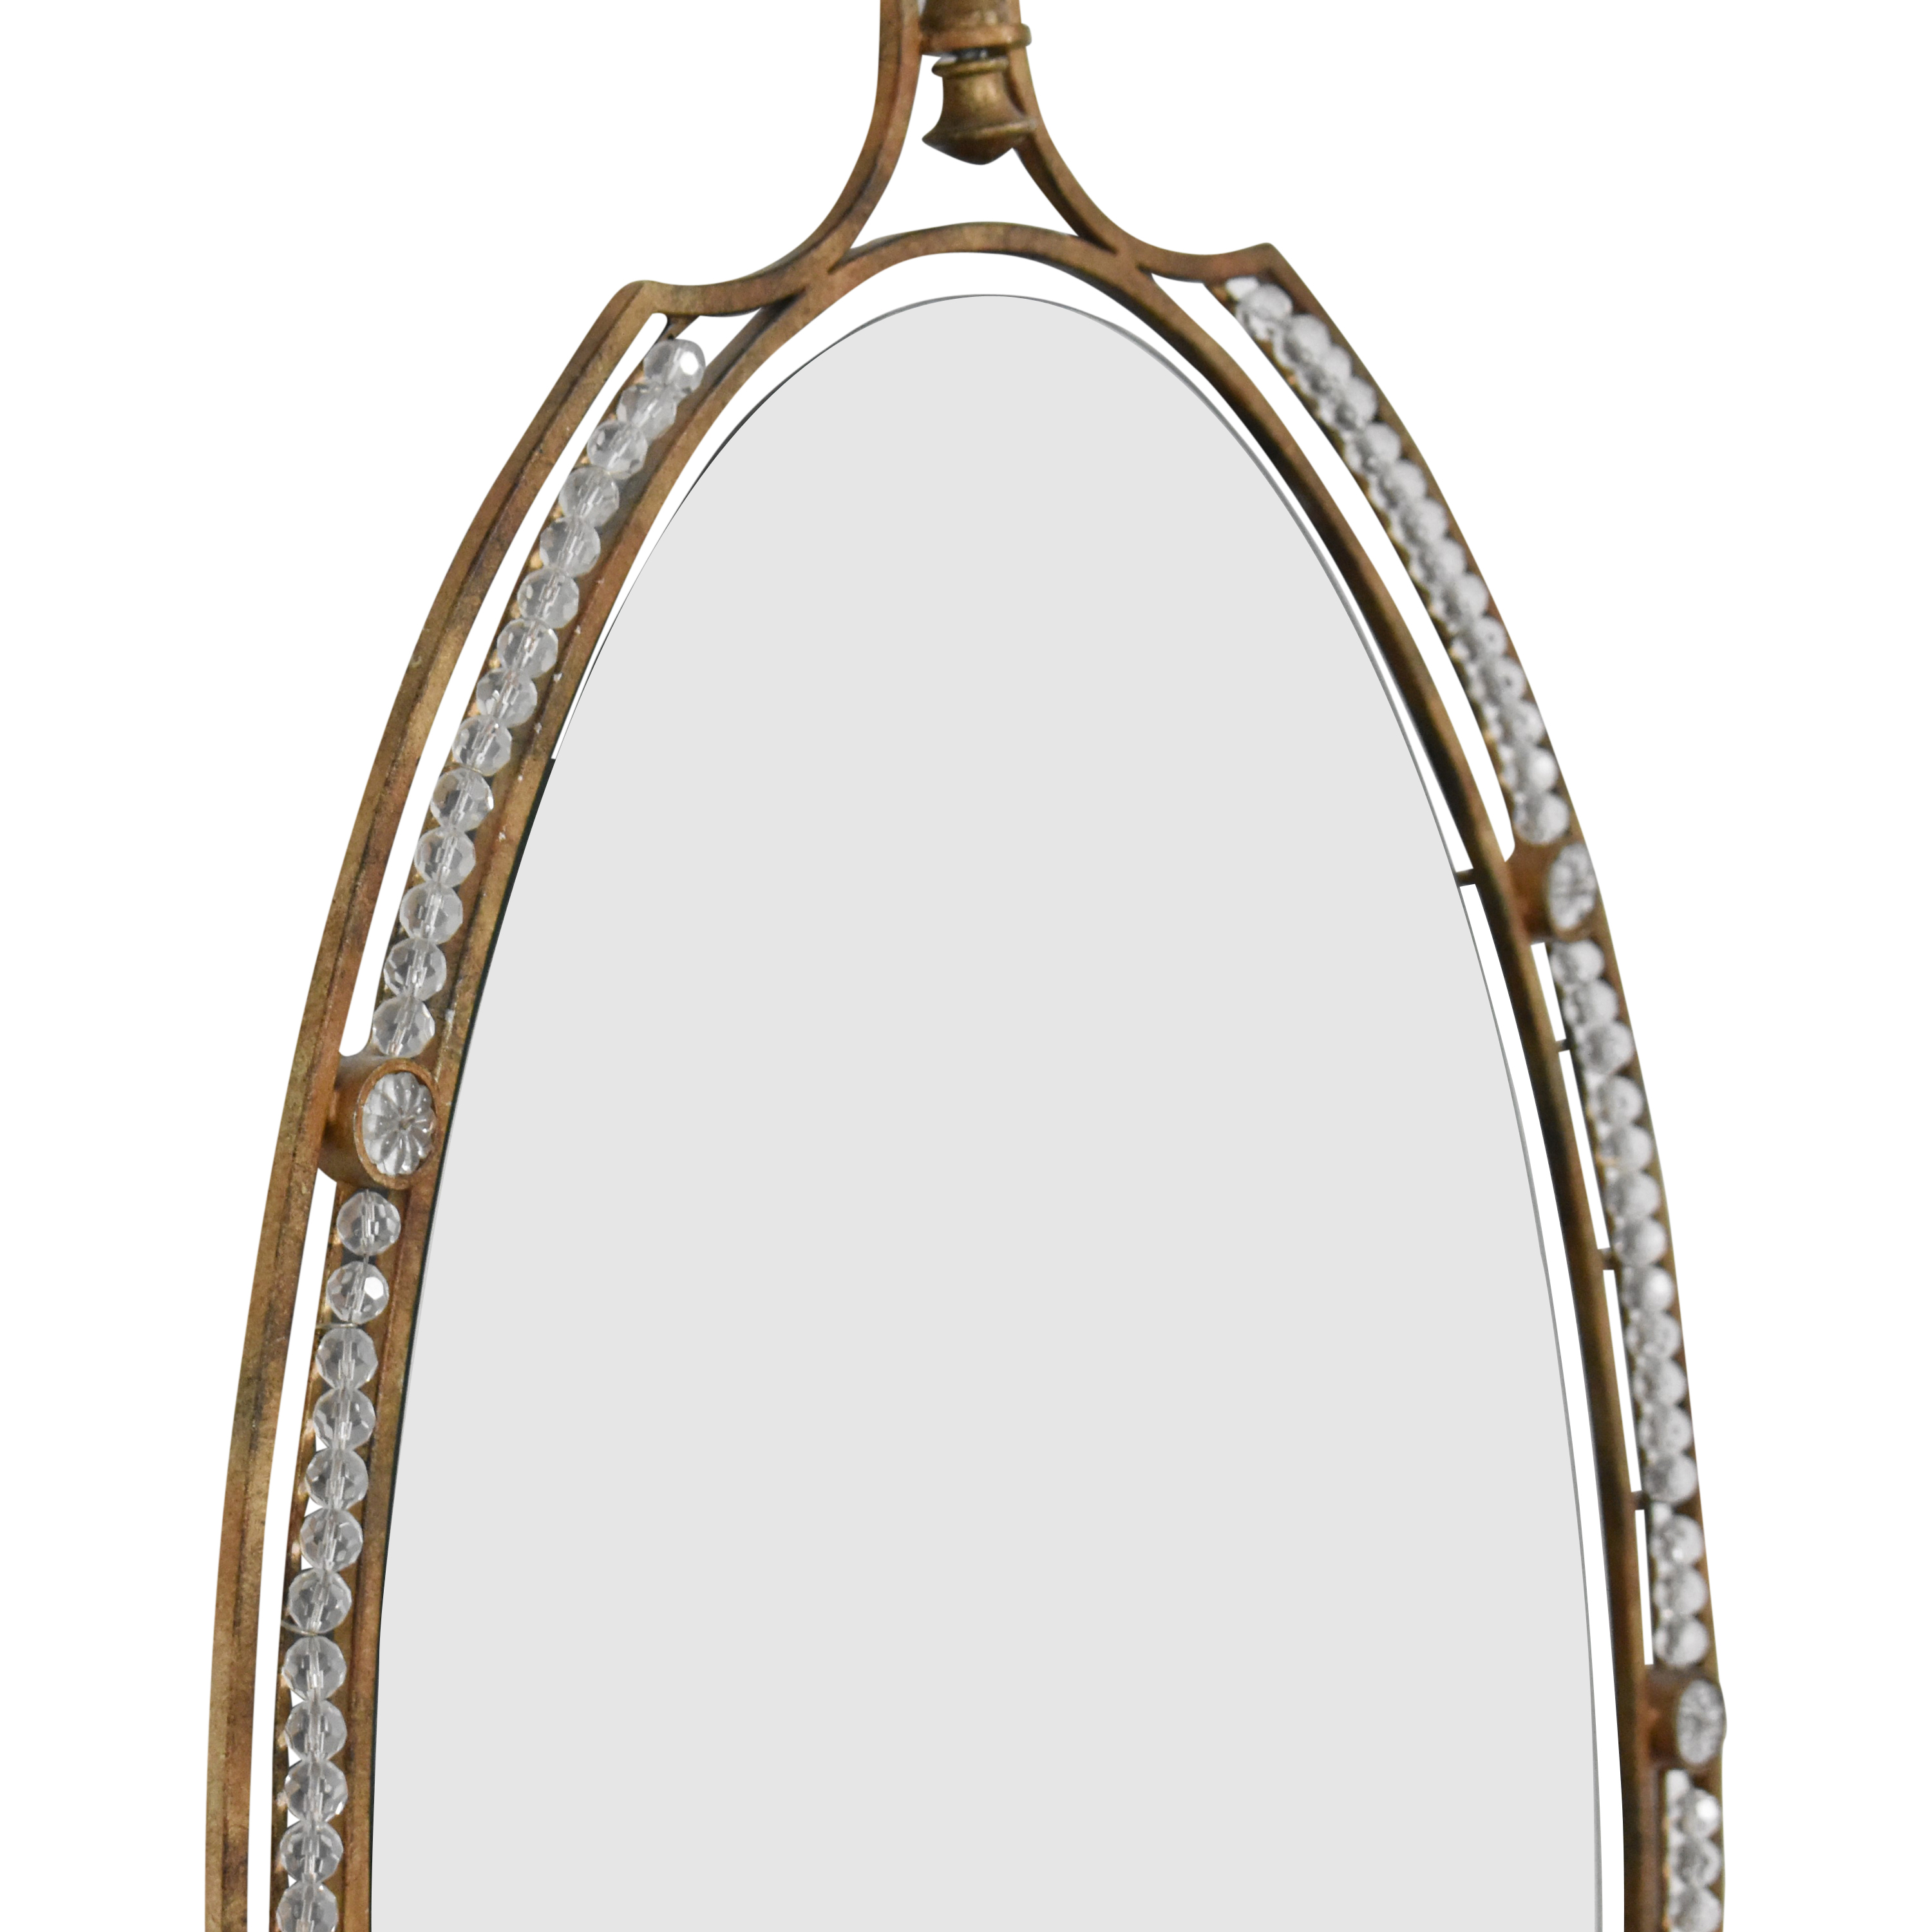 Murray Feiss Murray Feiss Valentina Mirror dimensions